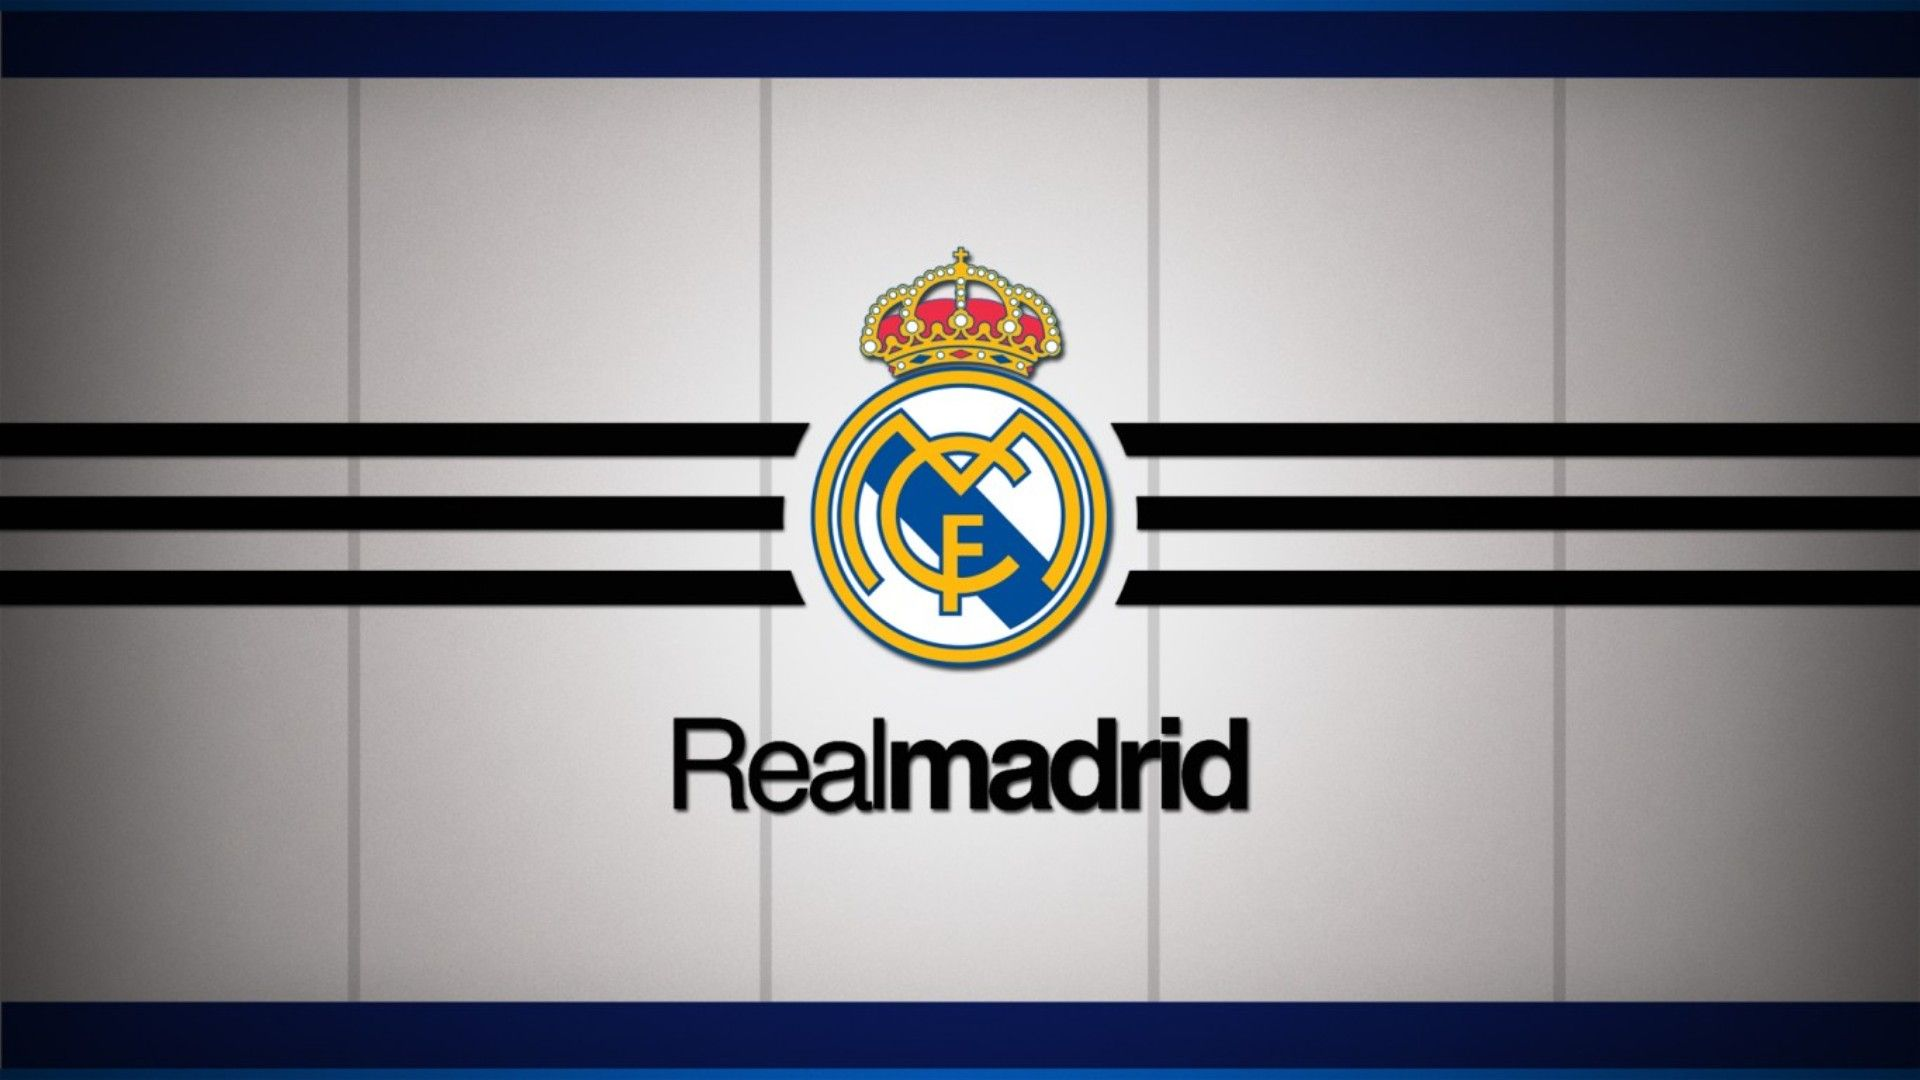 Real Madrid Logo Wallpapers Top Free Real Madrid Logo Backgrounds Wallpaperaccess